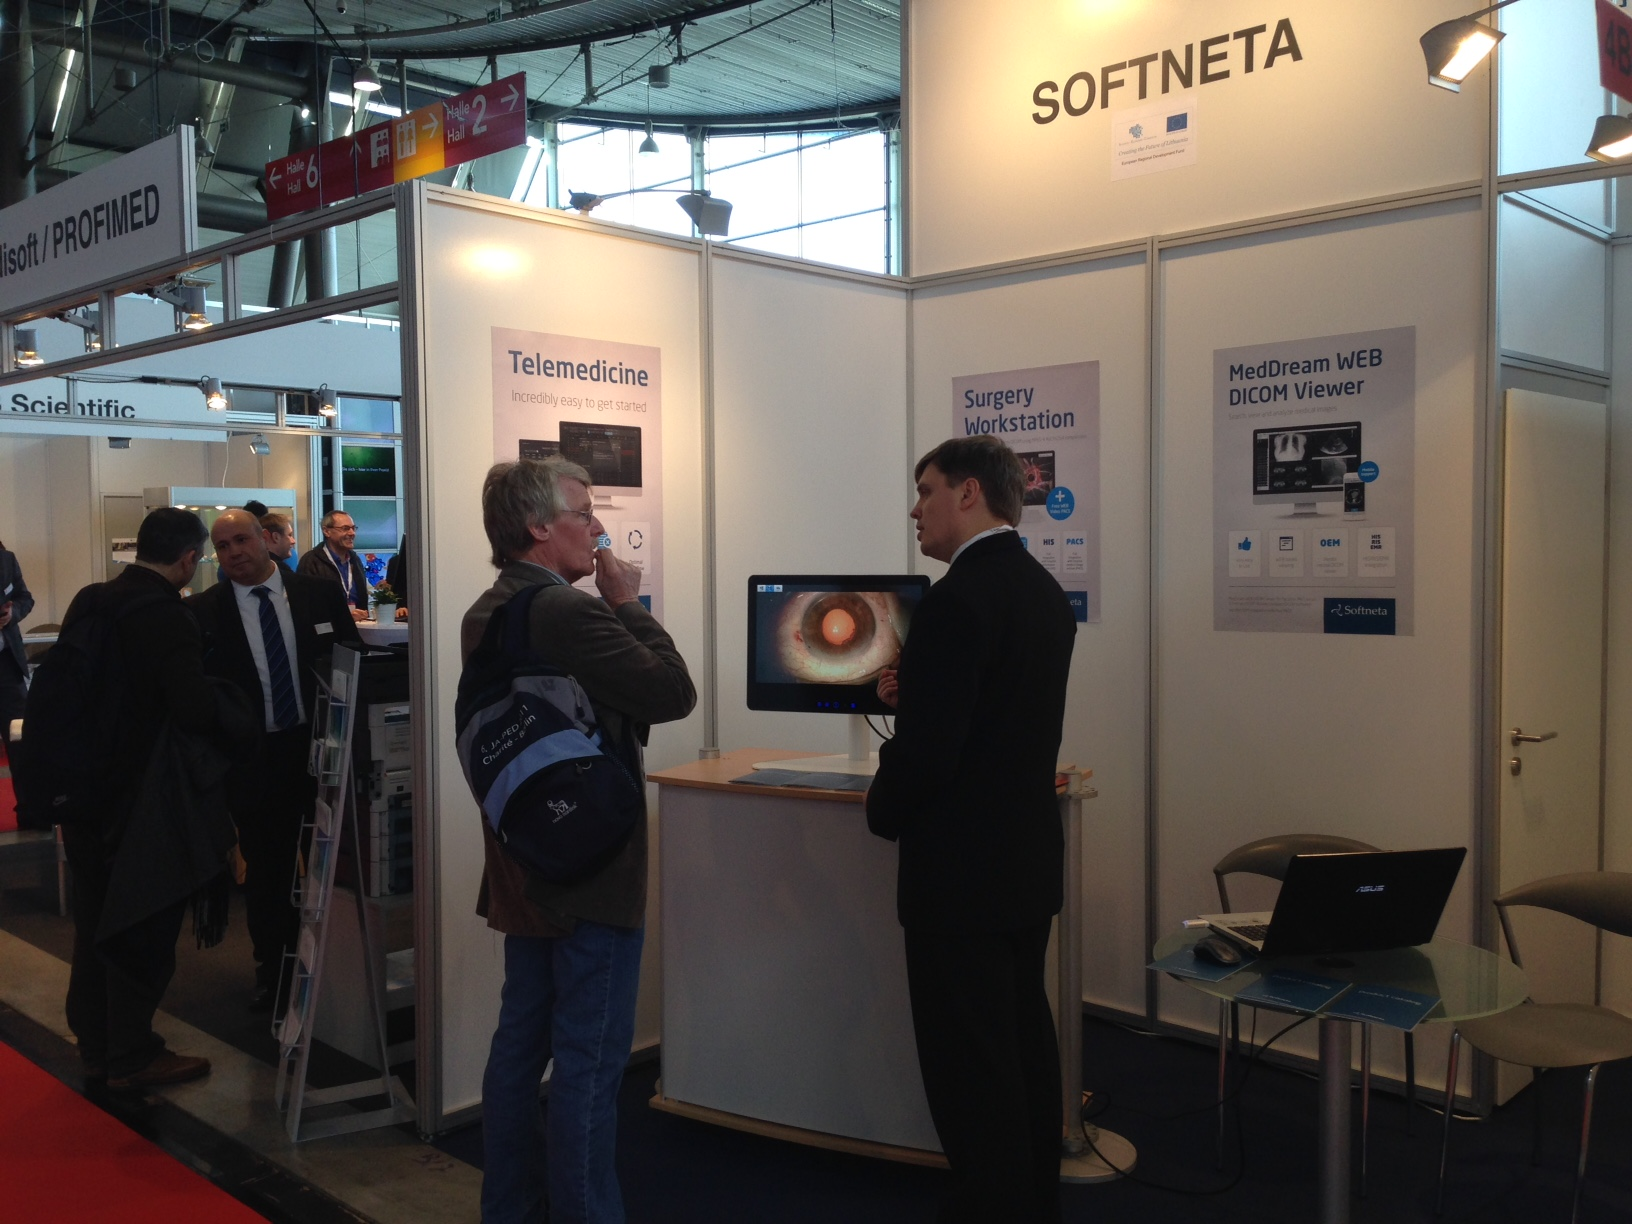 Softneta medical imaging solution for surgery